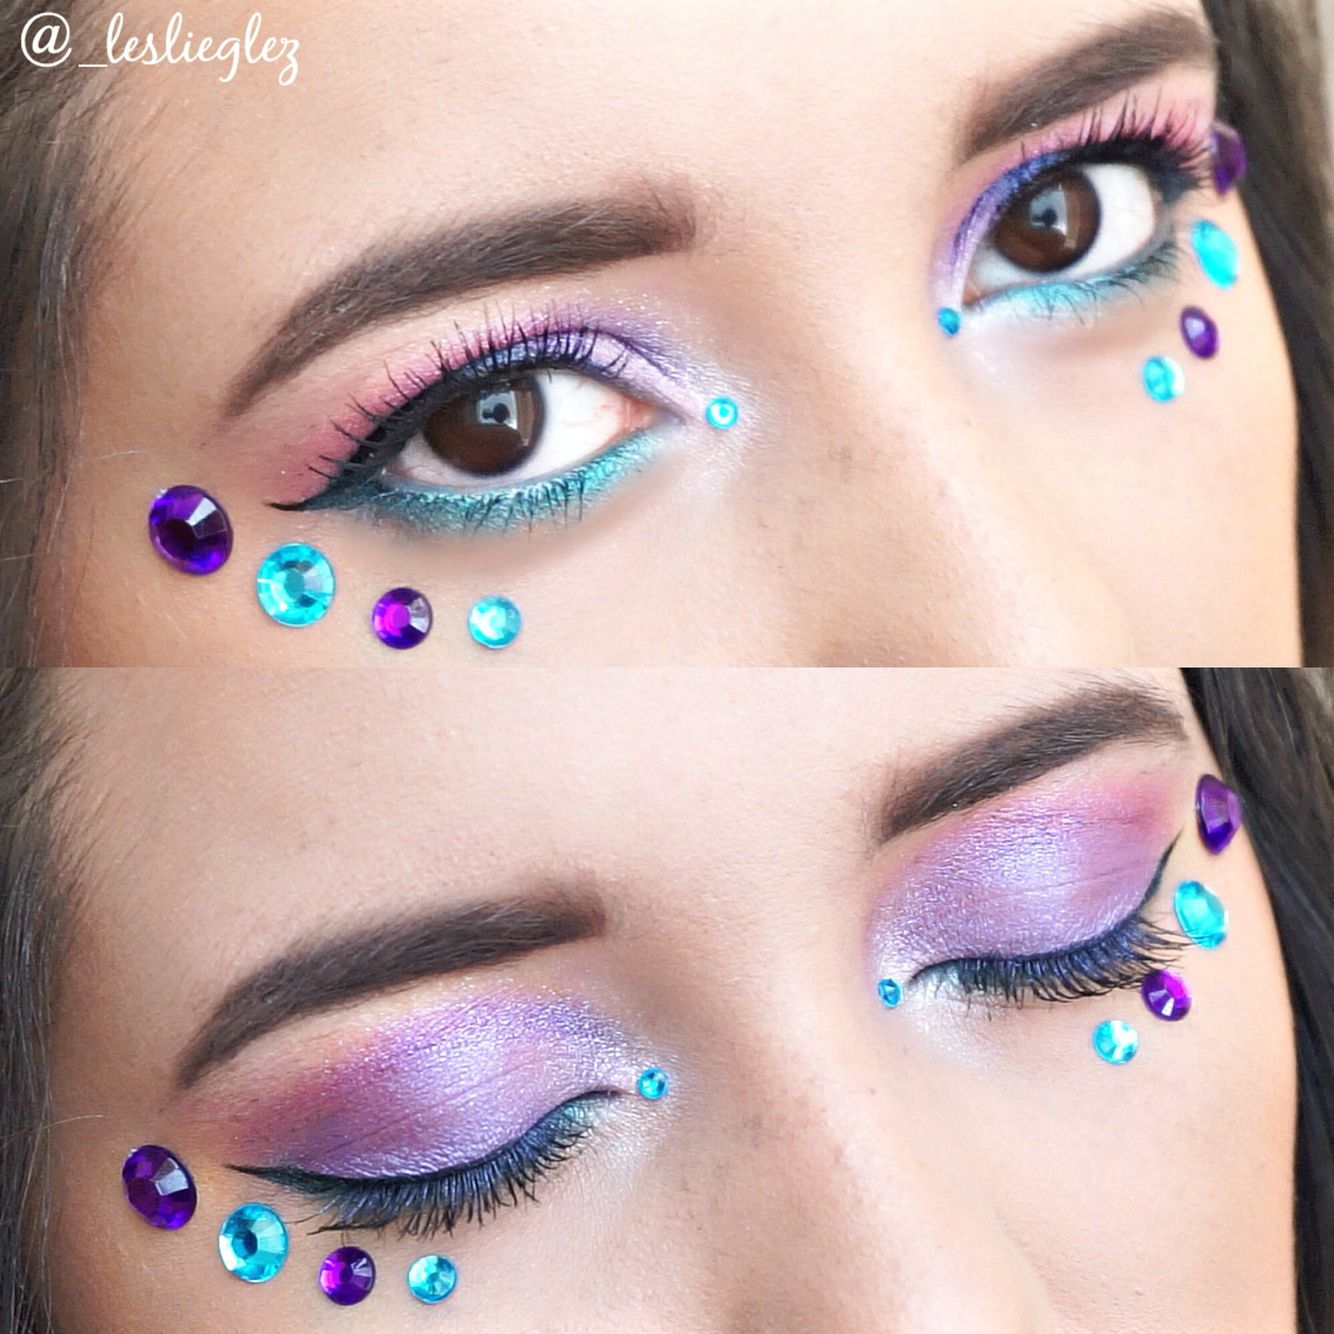 This is a galaxy/space inspired makeup look I created using the Urban Decay Spectrum palette! Subscribe to my YouTube channel (Leslie Gonzalez) or follow me on Instagram (_leslieglez) to see the full look!